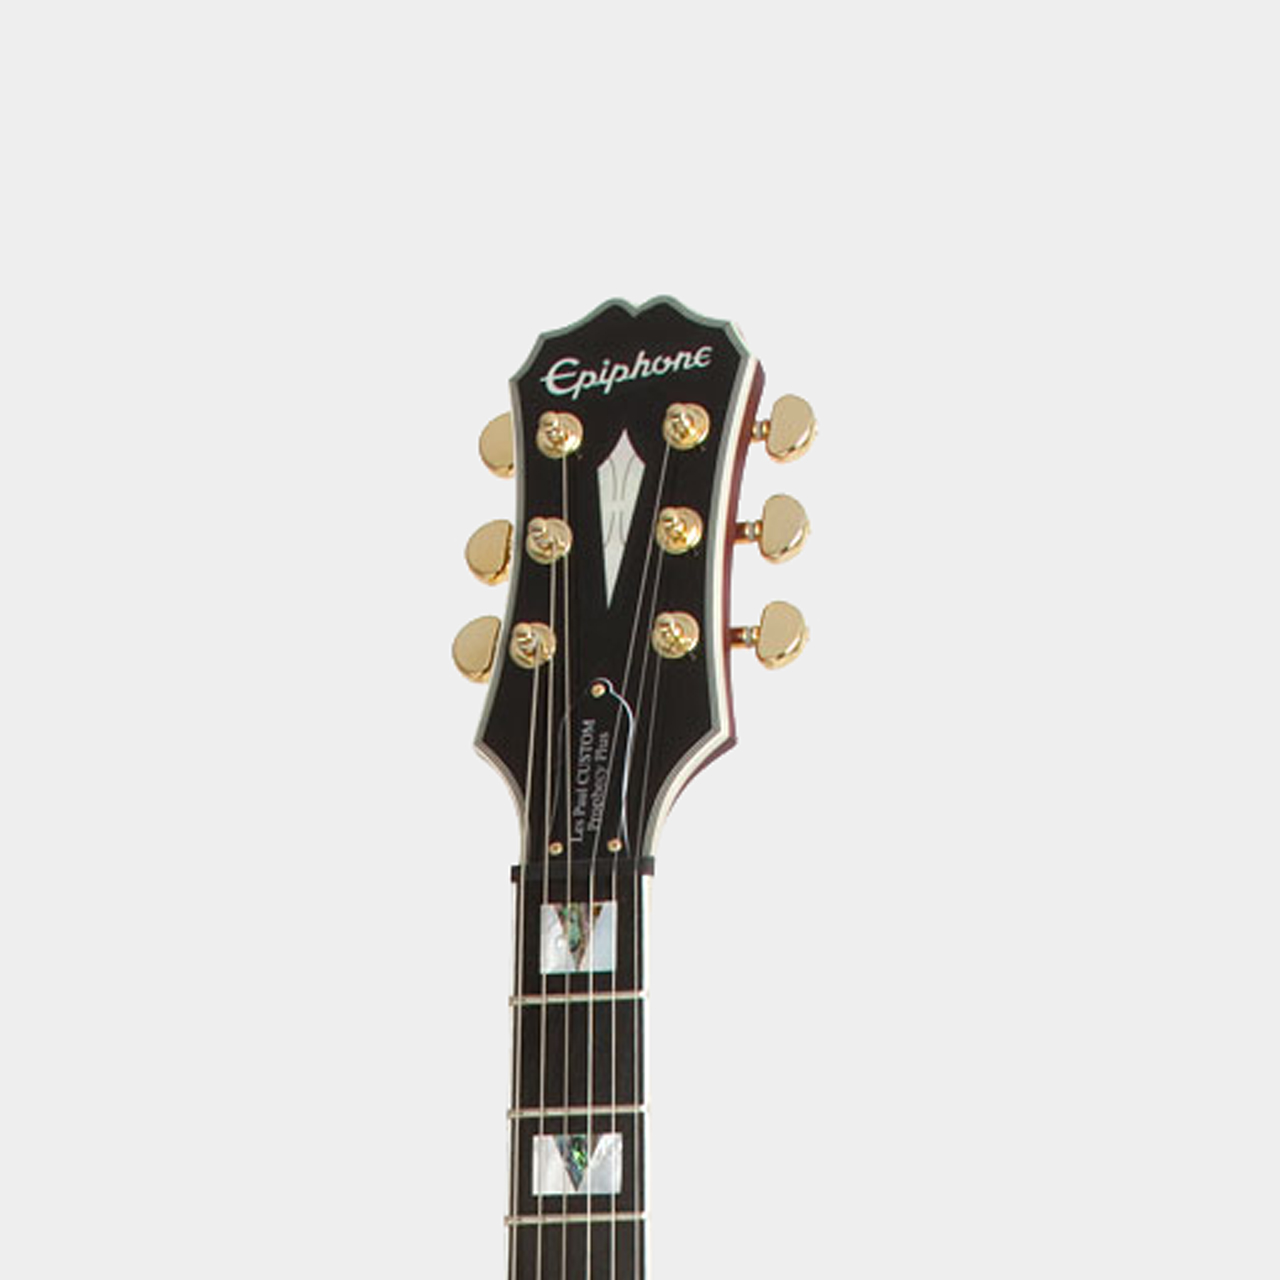 EPIPHONE Prophecy Les Paul Custom Plus EX Black Cherry Headstock Detail